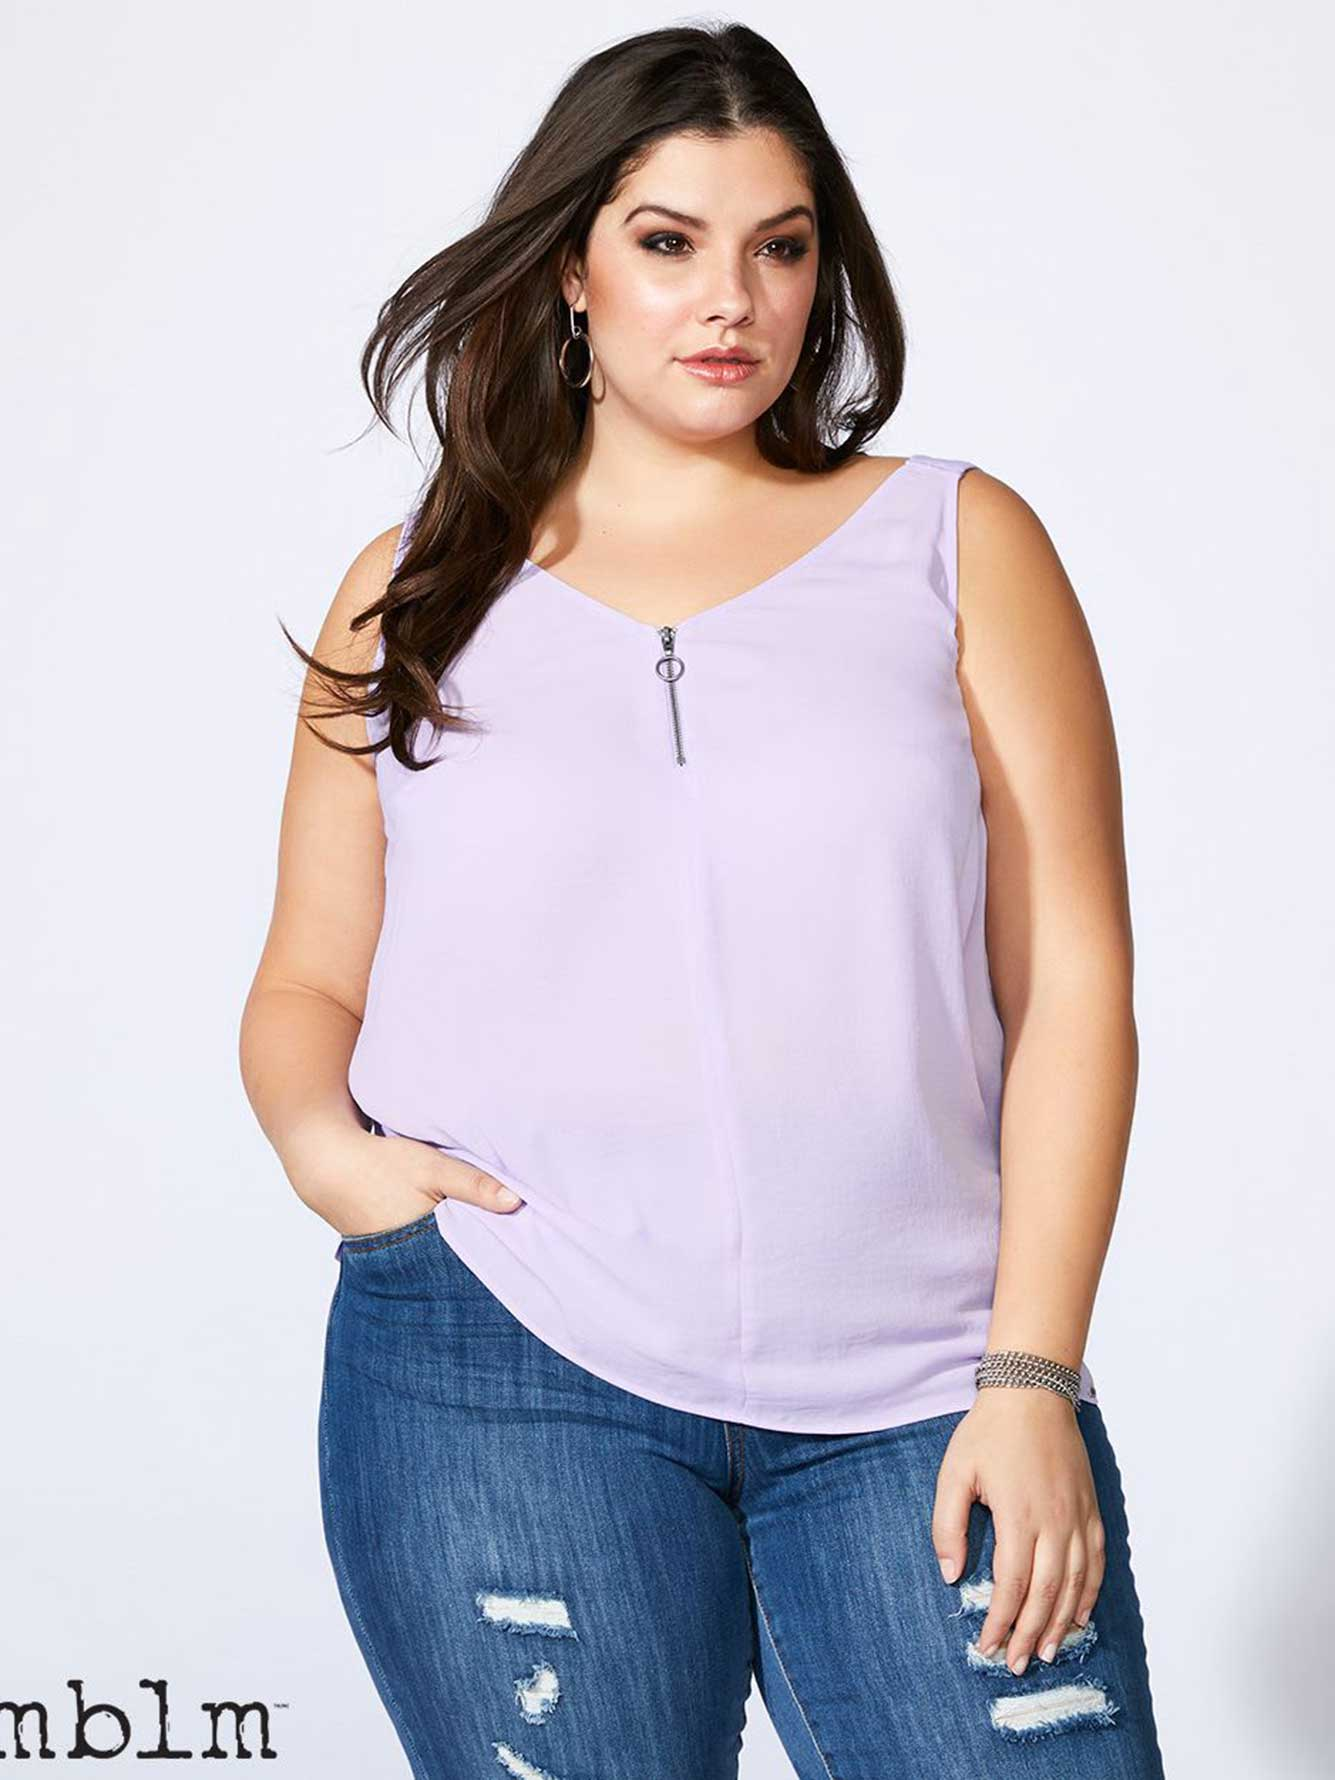 mblm - Sleeveless Blouse with Zip